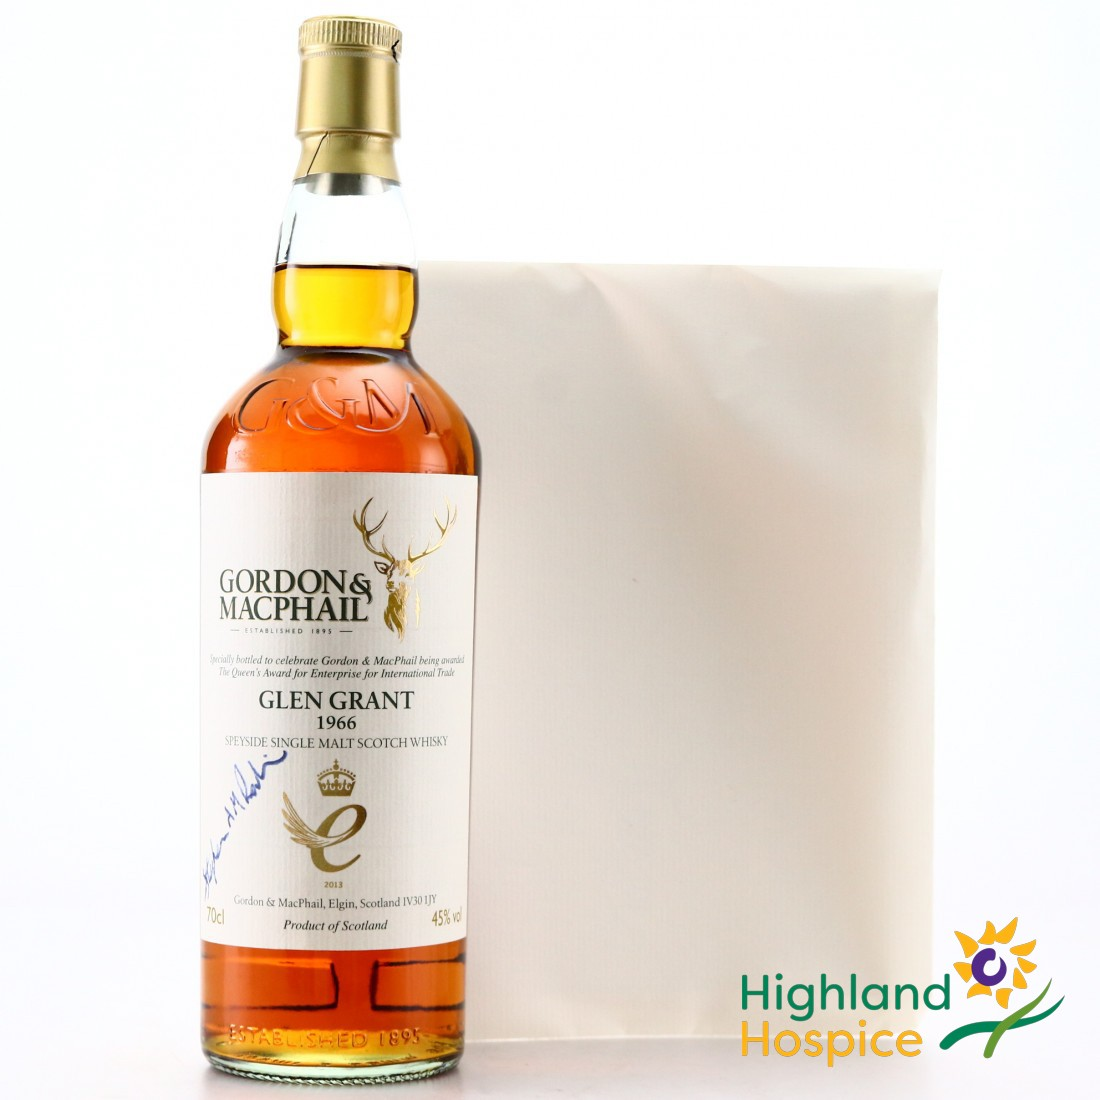 Glen Grant 1966 Gordon and MacPhail / Queen's Award for Enterprise with Whisky Tasting - Highland Hospice Charity Lot